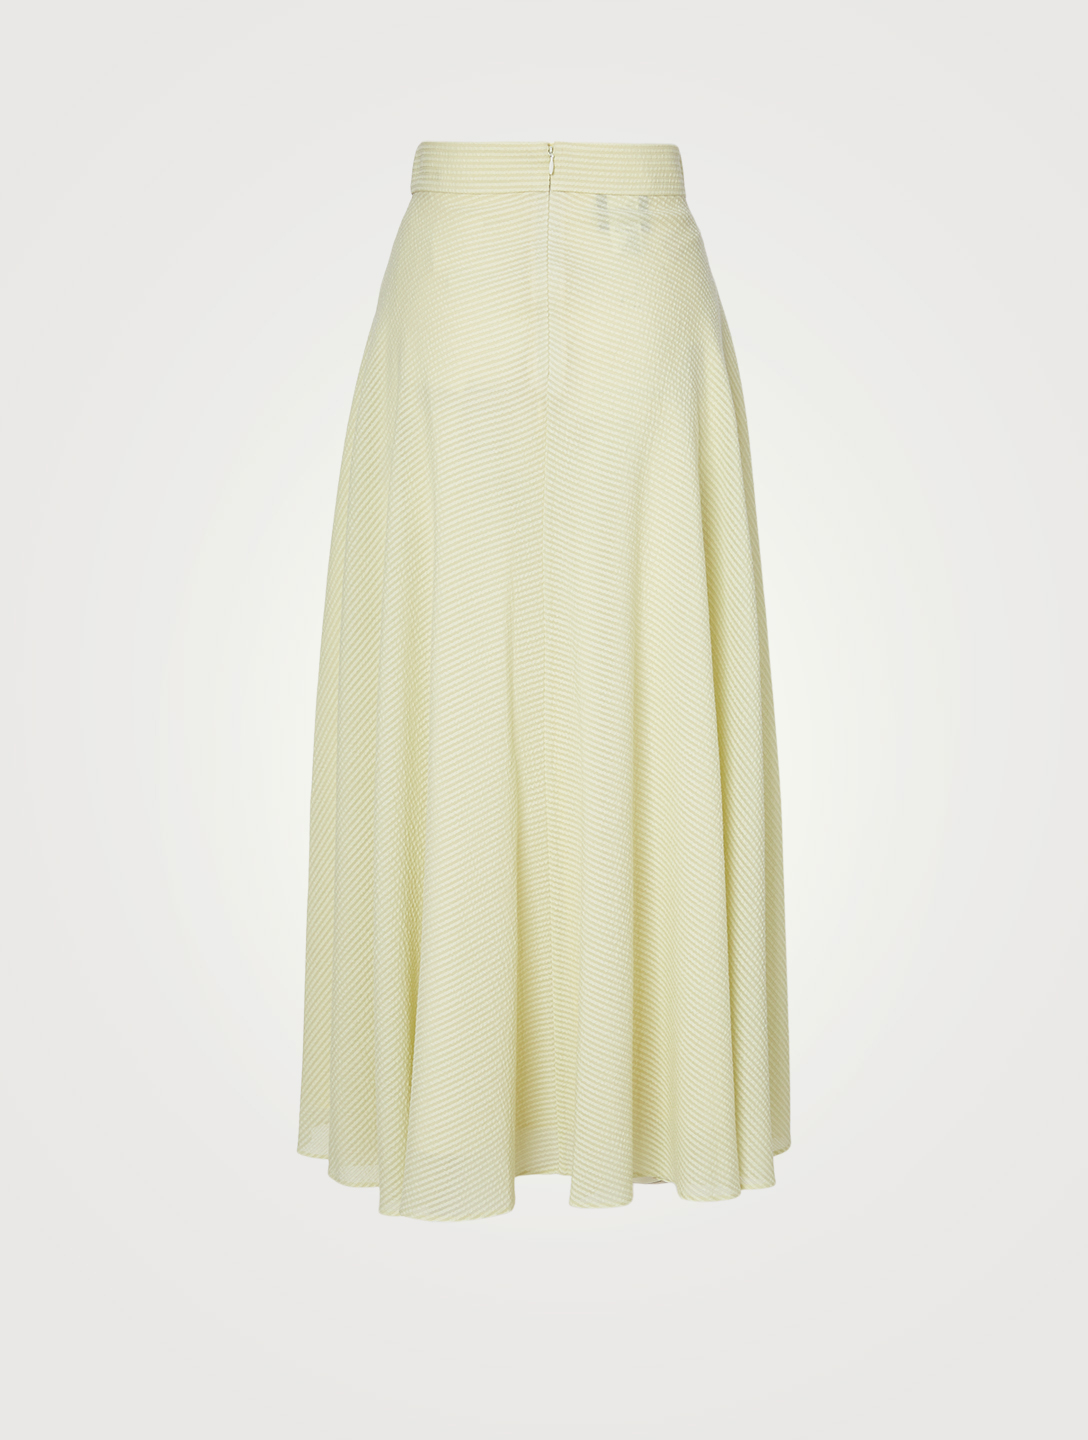 AKRIS Wool And Silk Seersucker Long Skirt Women's Green